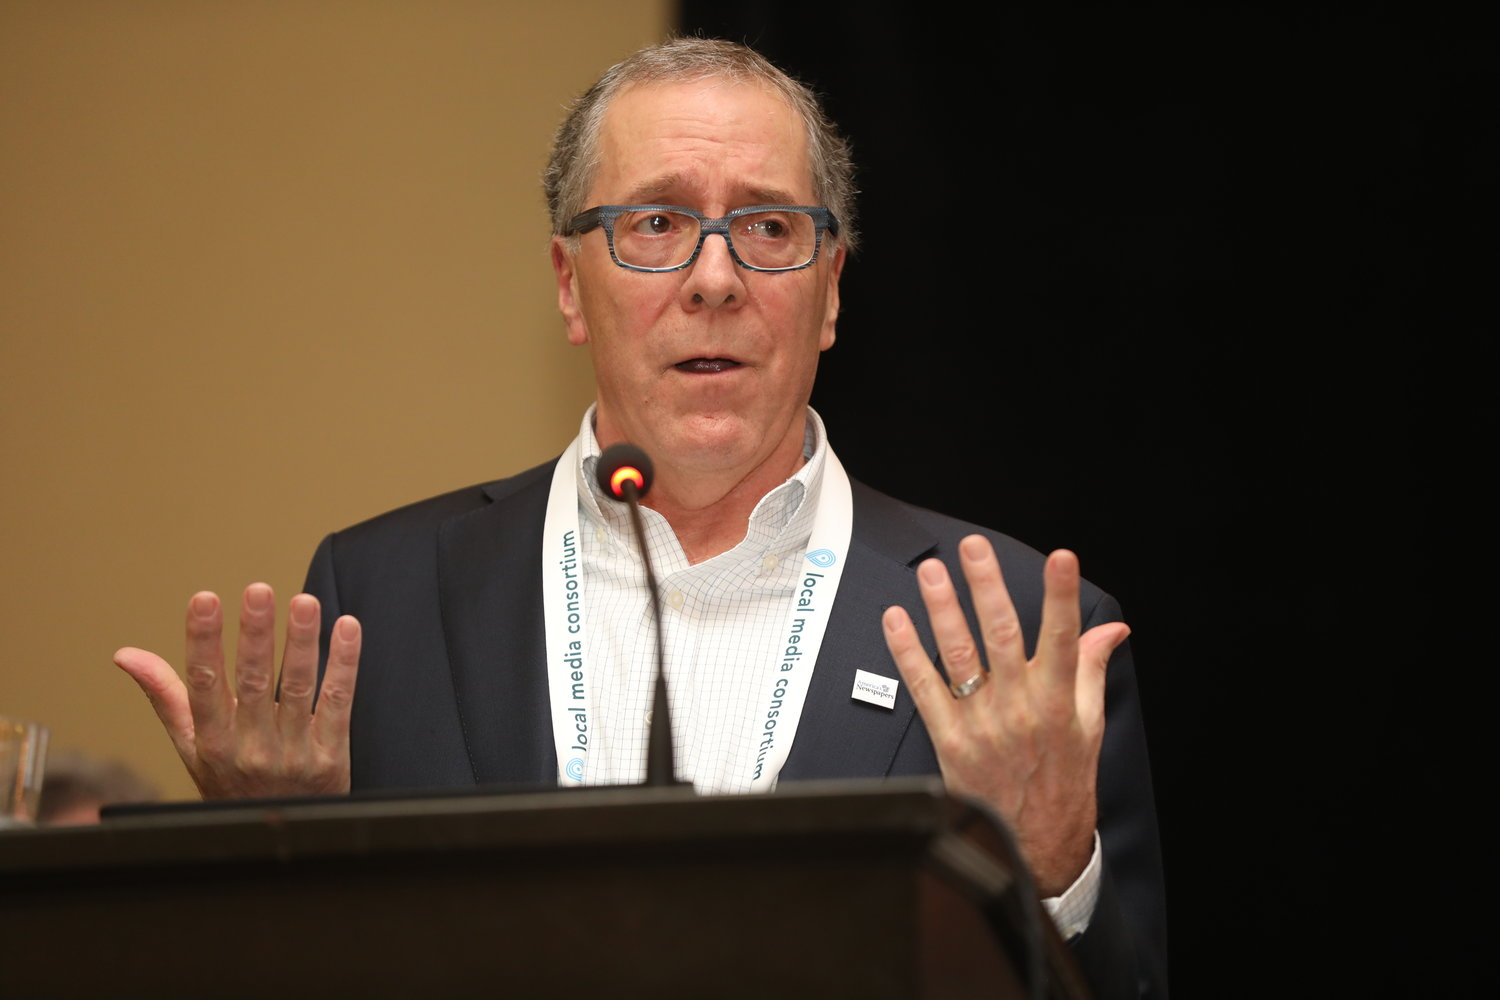 Alan Fisco, president and chief financial officer of The Seattle Times and vice president of America's Newspapers, at the 2020 Mega-Conference. (Photo by Bob Booth)